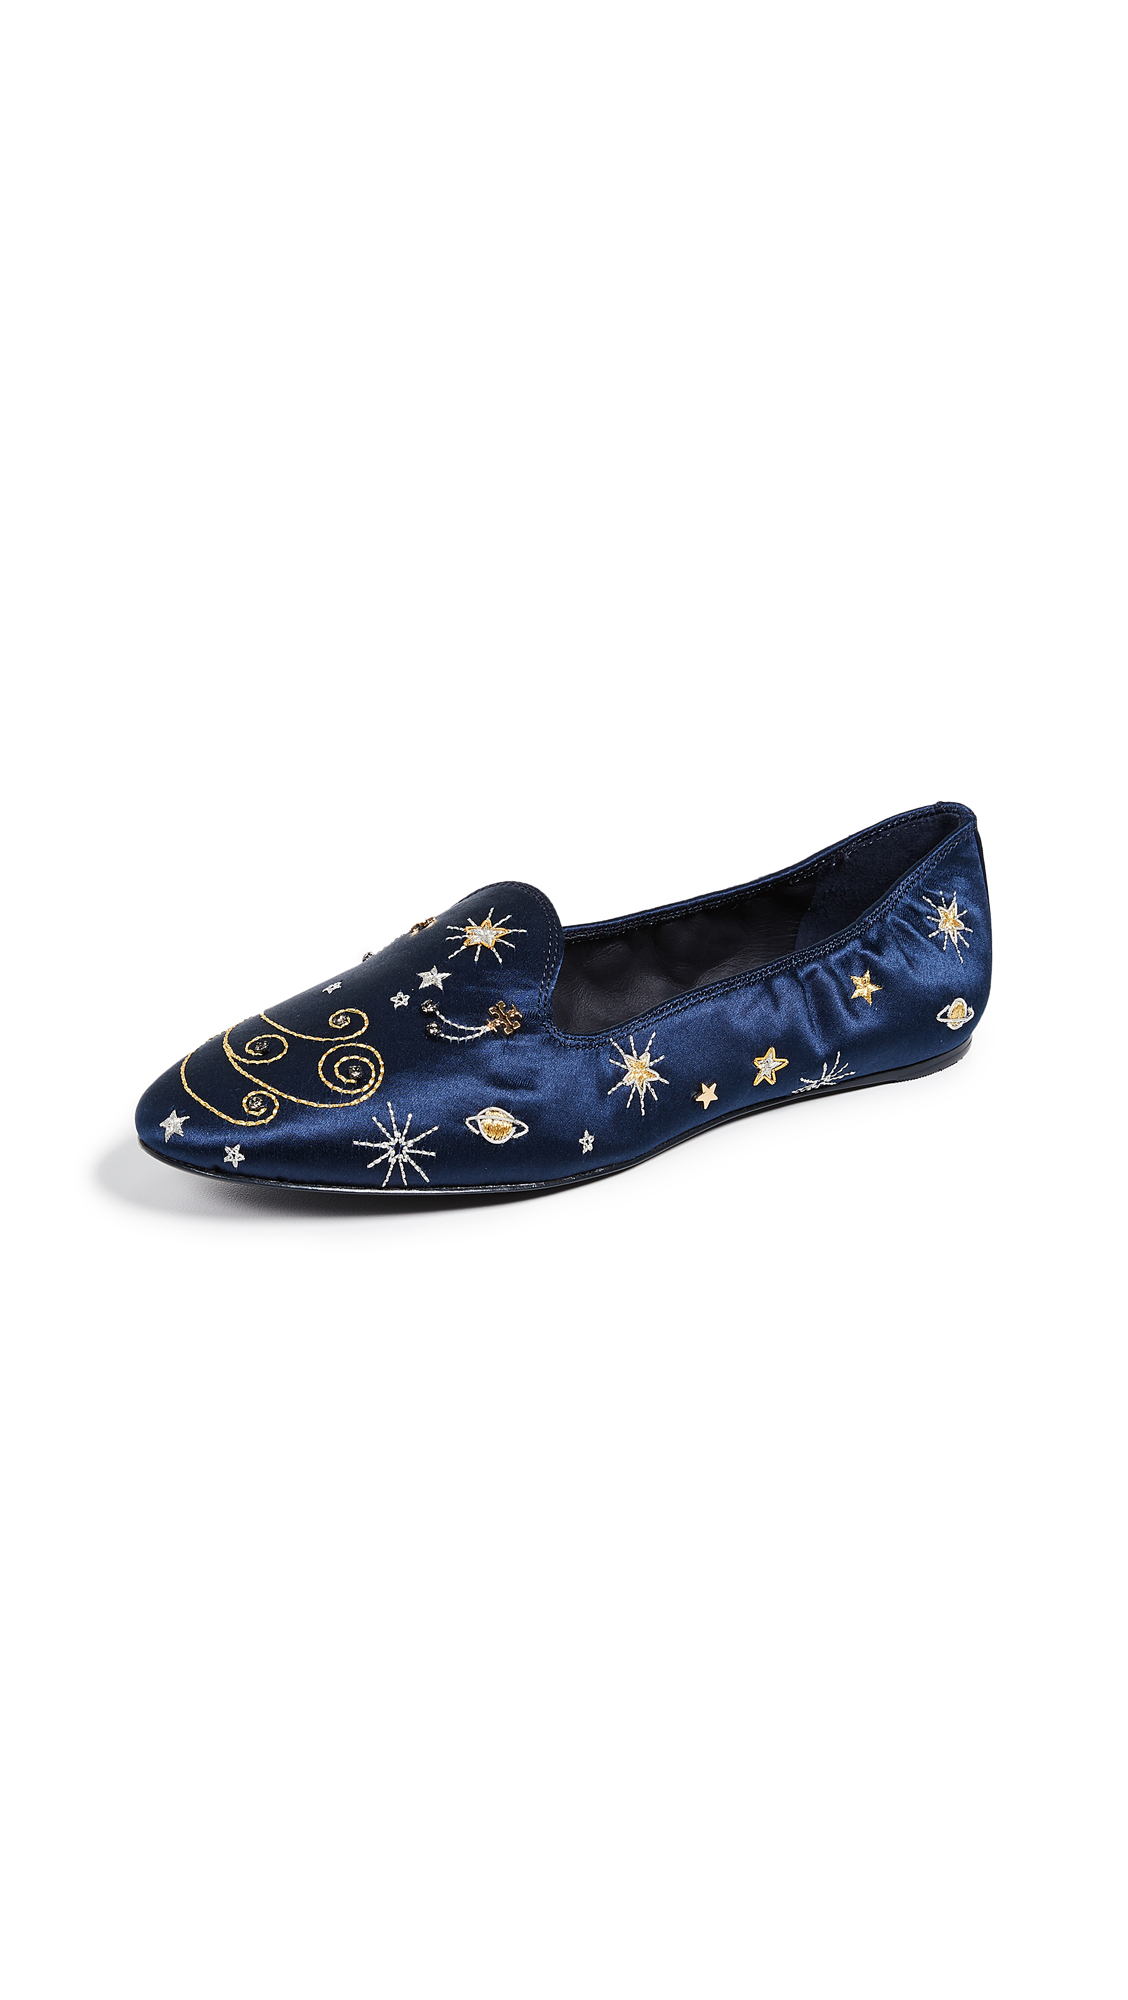 Tory Burch Olympia Embroidered Loafers - Perfect Navy